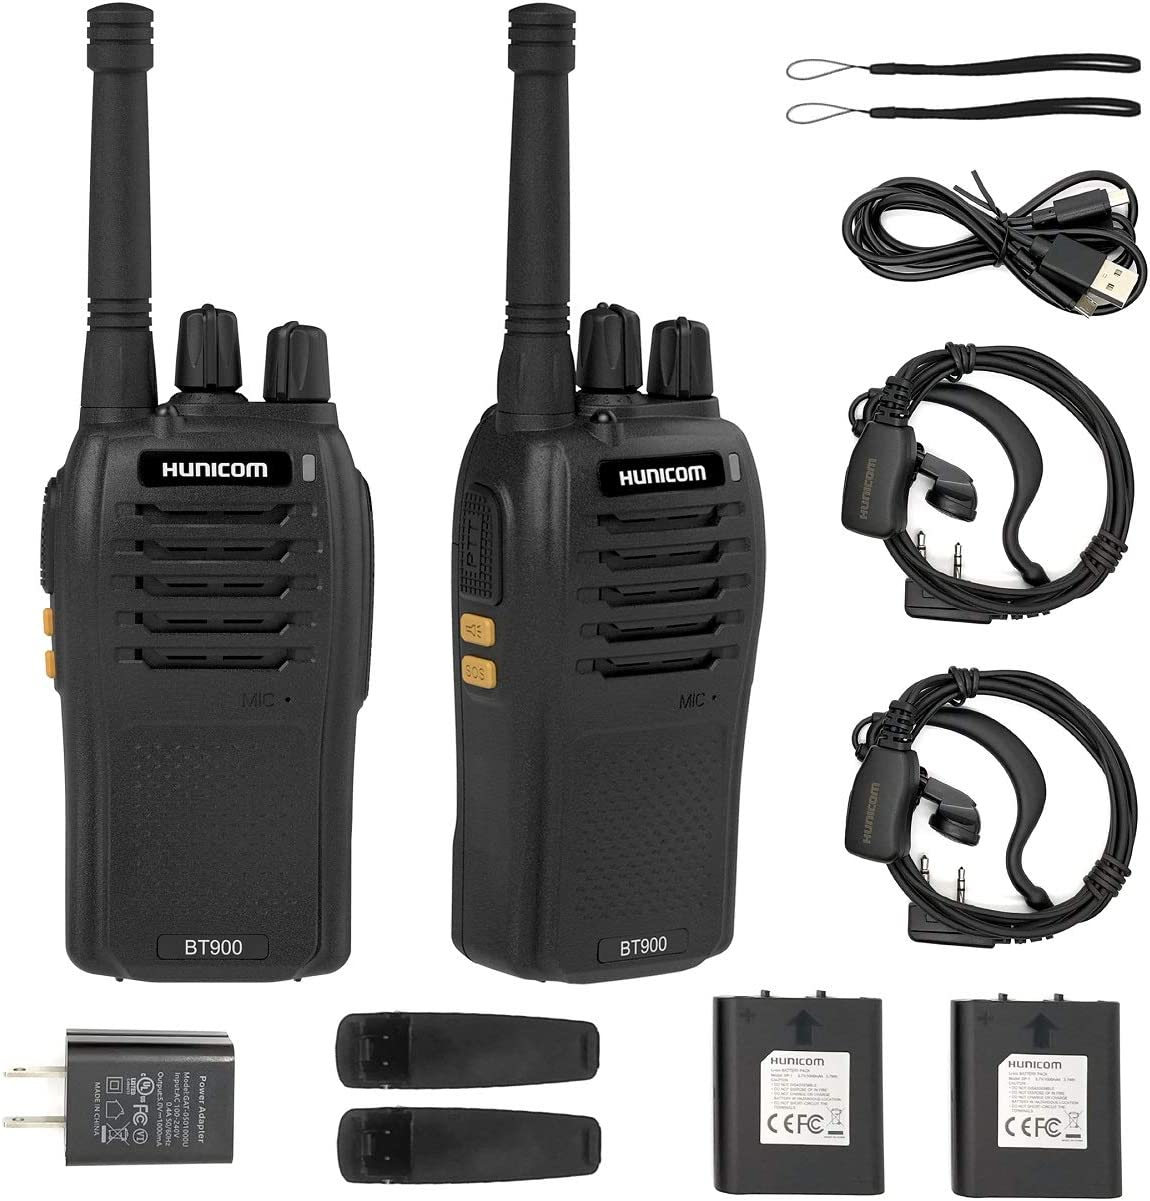 Walkie Talkies Rechargeable, HUNICOM Long Range Walkie Talkies for Adults Two Way Radio, Walkie Talkie with Earpieces and Mic, Walky Talky with Charger for Family Activities, Camping, Hiking, Biking